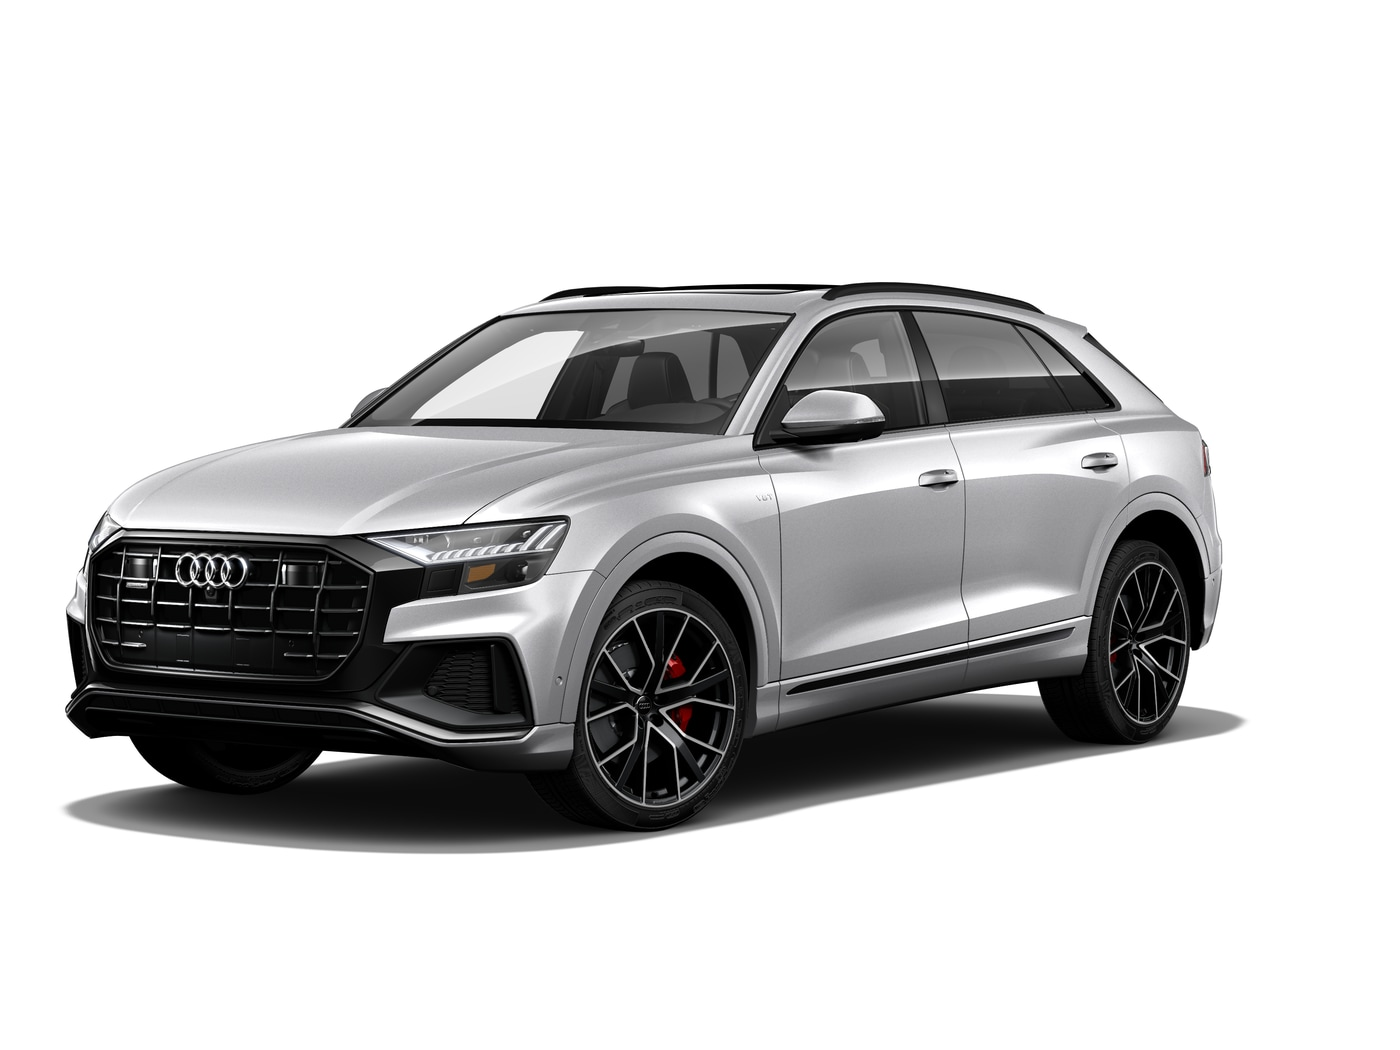 New 2020 Audi Q8 For Sale At Southern California Audi Dealers Vin Wa1fvbf10ld019016